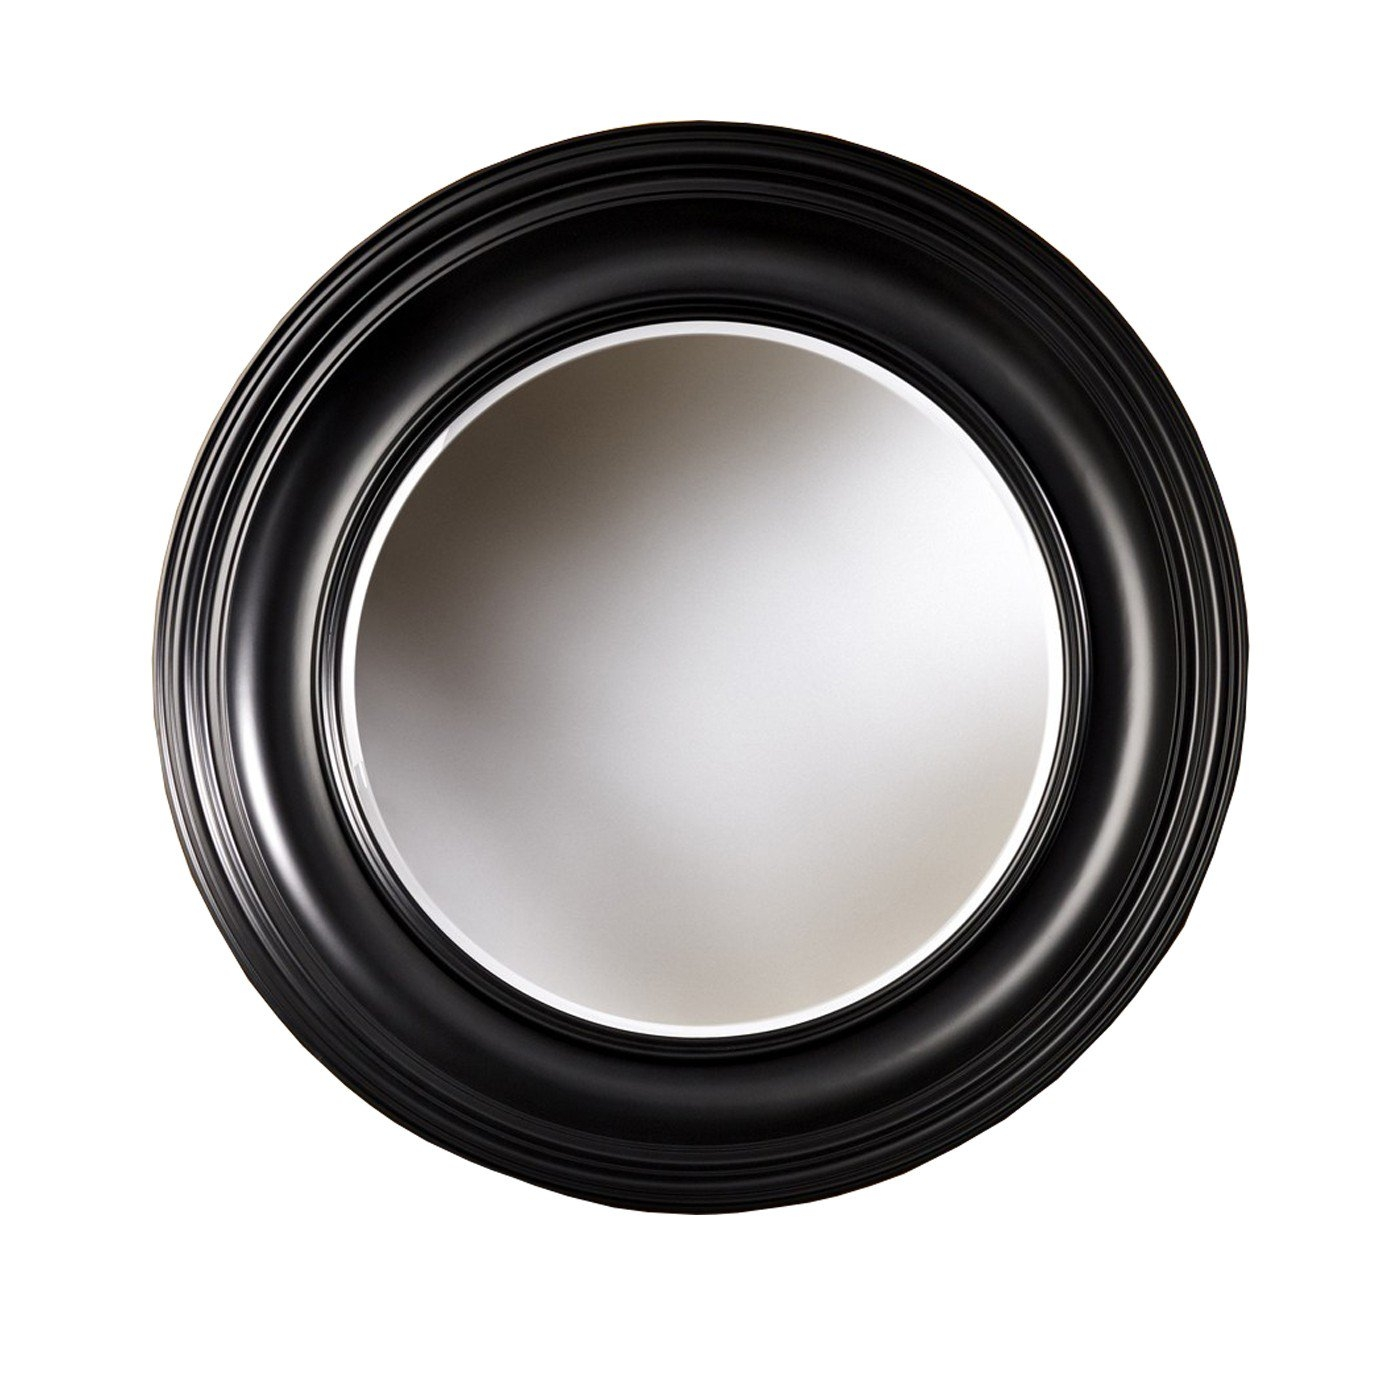 Black Round Mirrors Luxury Designer Circular Mirrors Heals Regarding Black Round Mirror (Image 5 of 15)